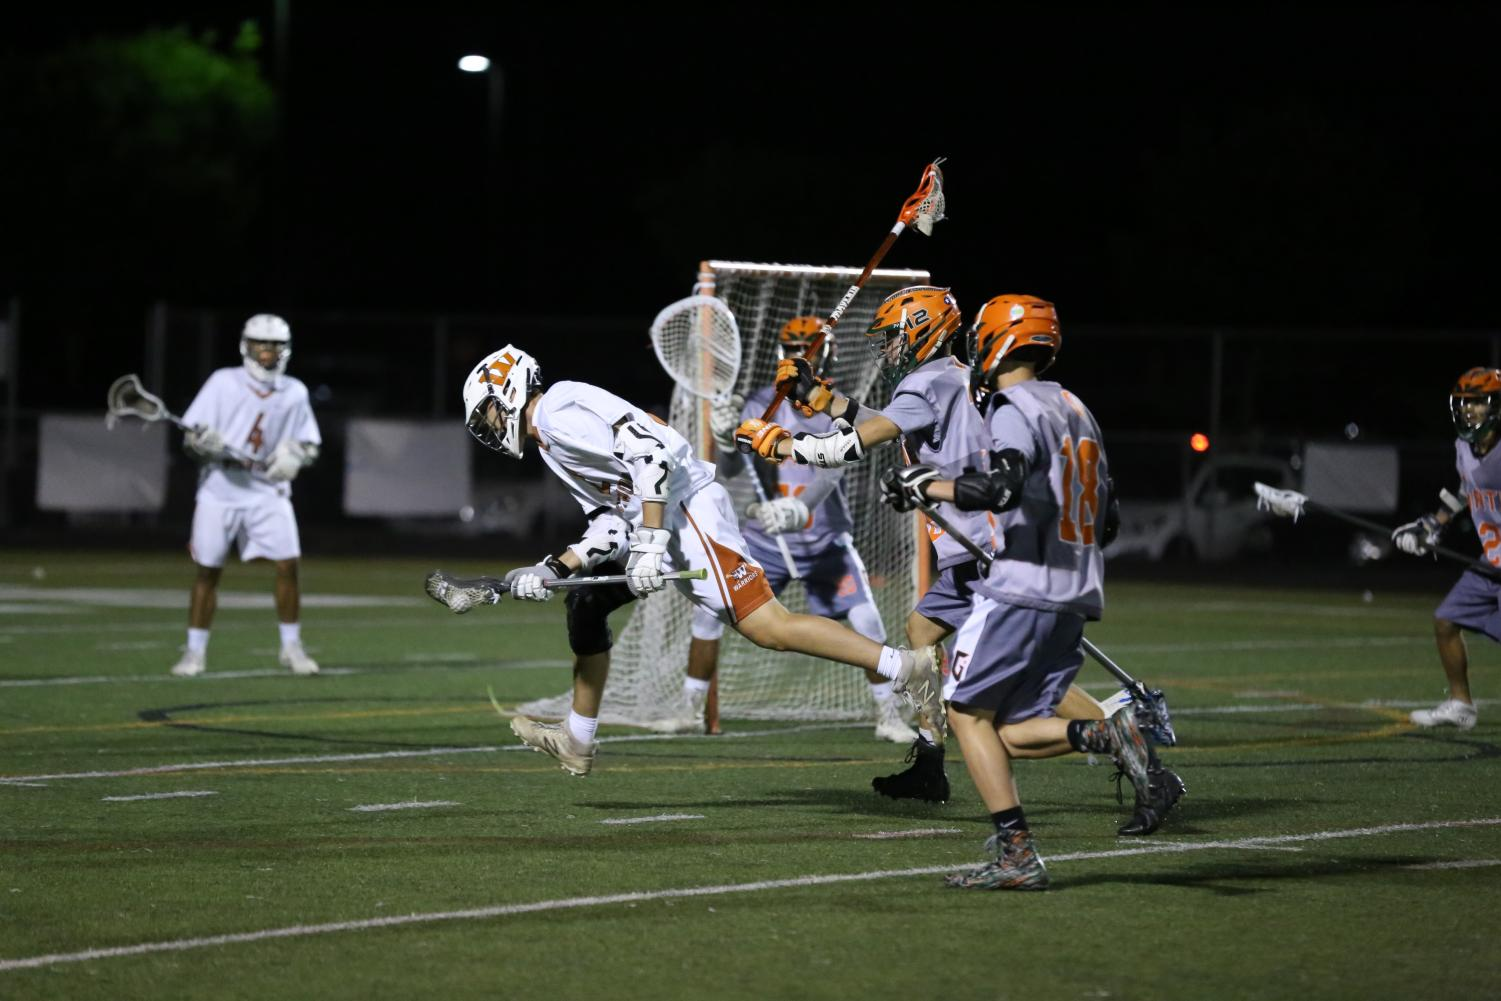 GALLERY%3A+Varsity+Boys%27+Lacrosse+Secures+Win+Against+Gateway+22-14